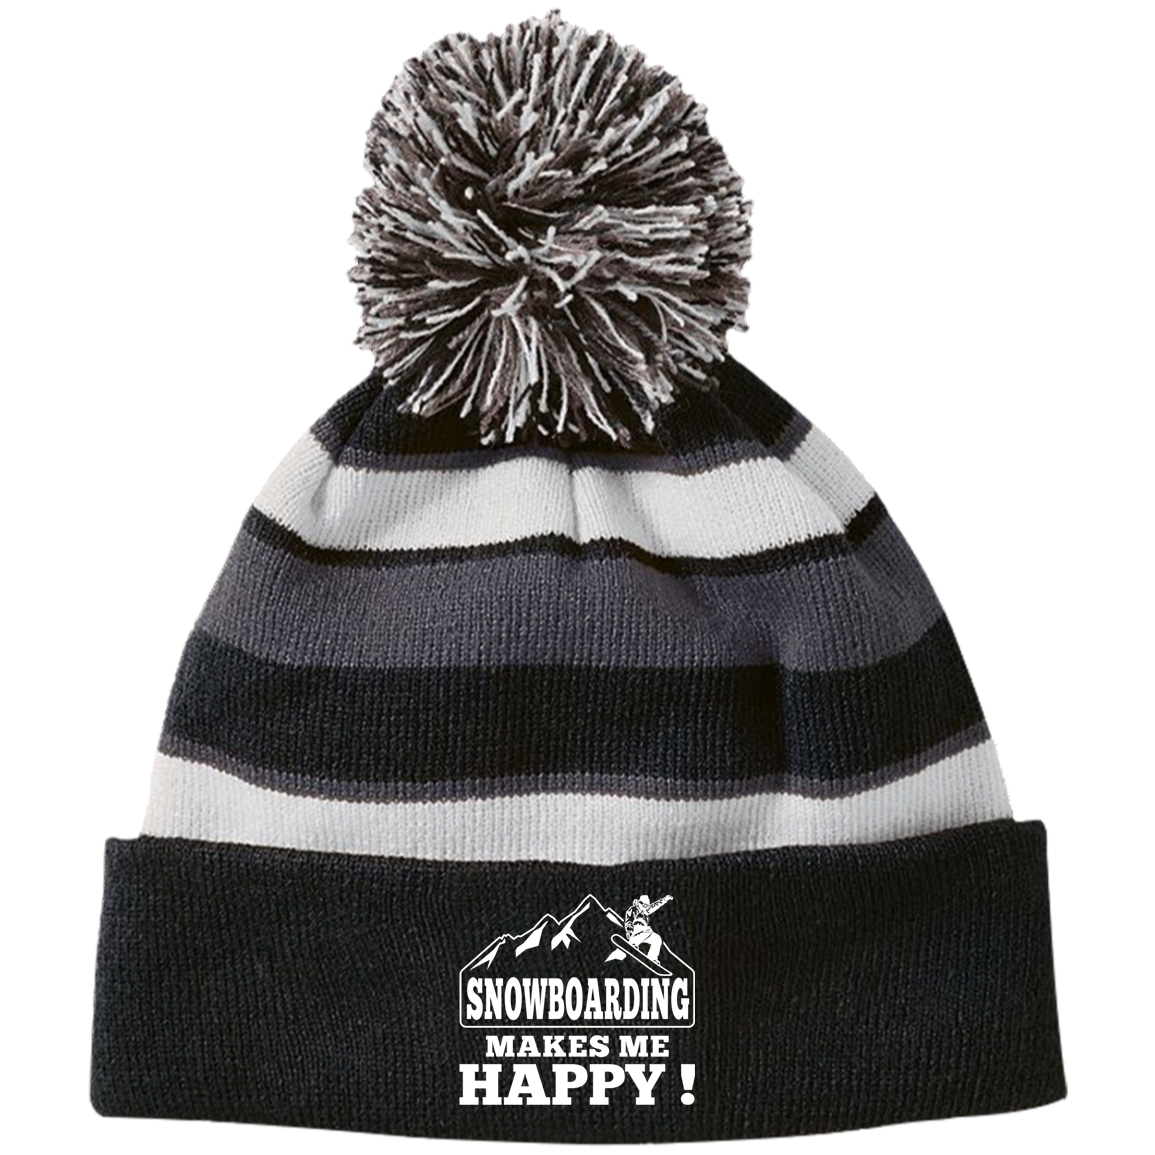 Snowboarding Makes Me Happy Striped Beanie - Powderaddicts